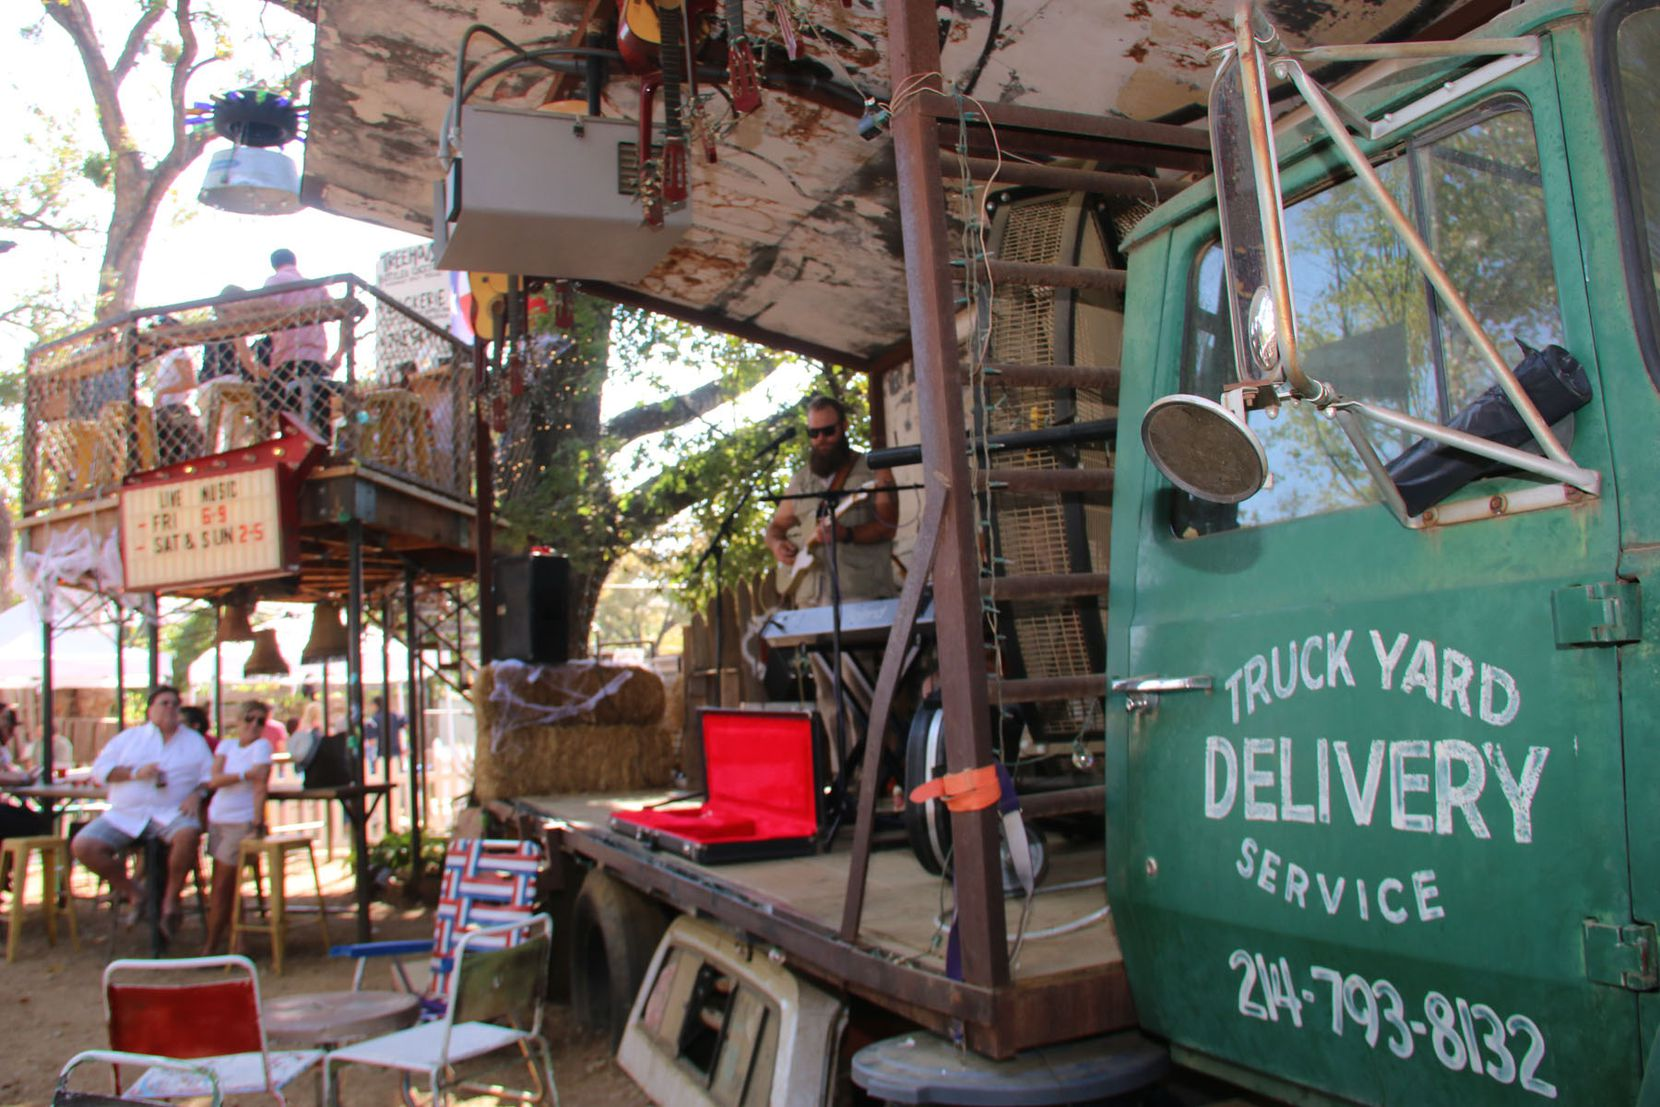 The Truck Yard in Dallas has mis-matched chairs and picnic tables strewn about its backyard. Keeping with the theme, Truck Yard in Fort Worth is expected to have indoor and outdoor stages made out of 1950s flatbed trucks.